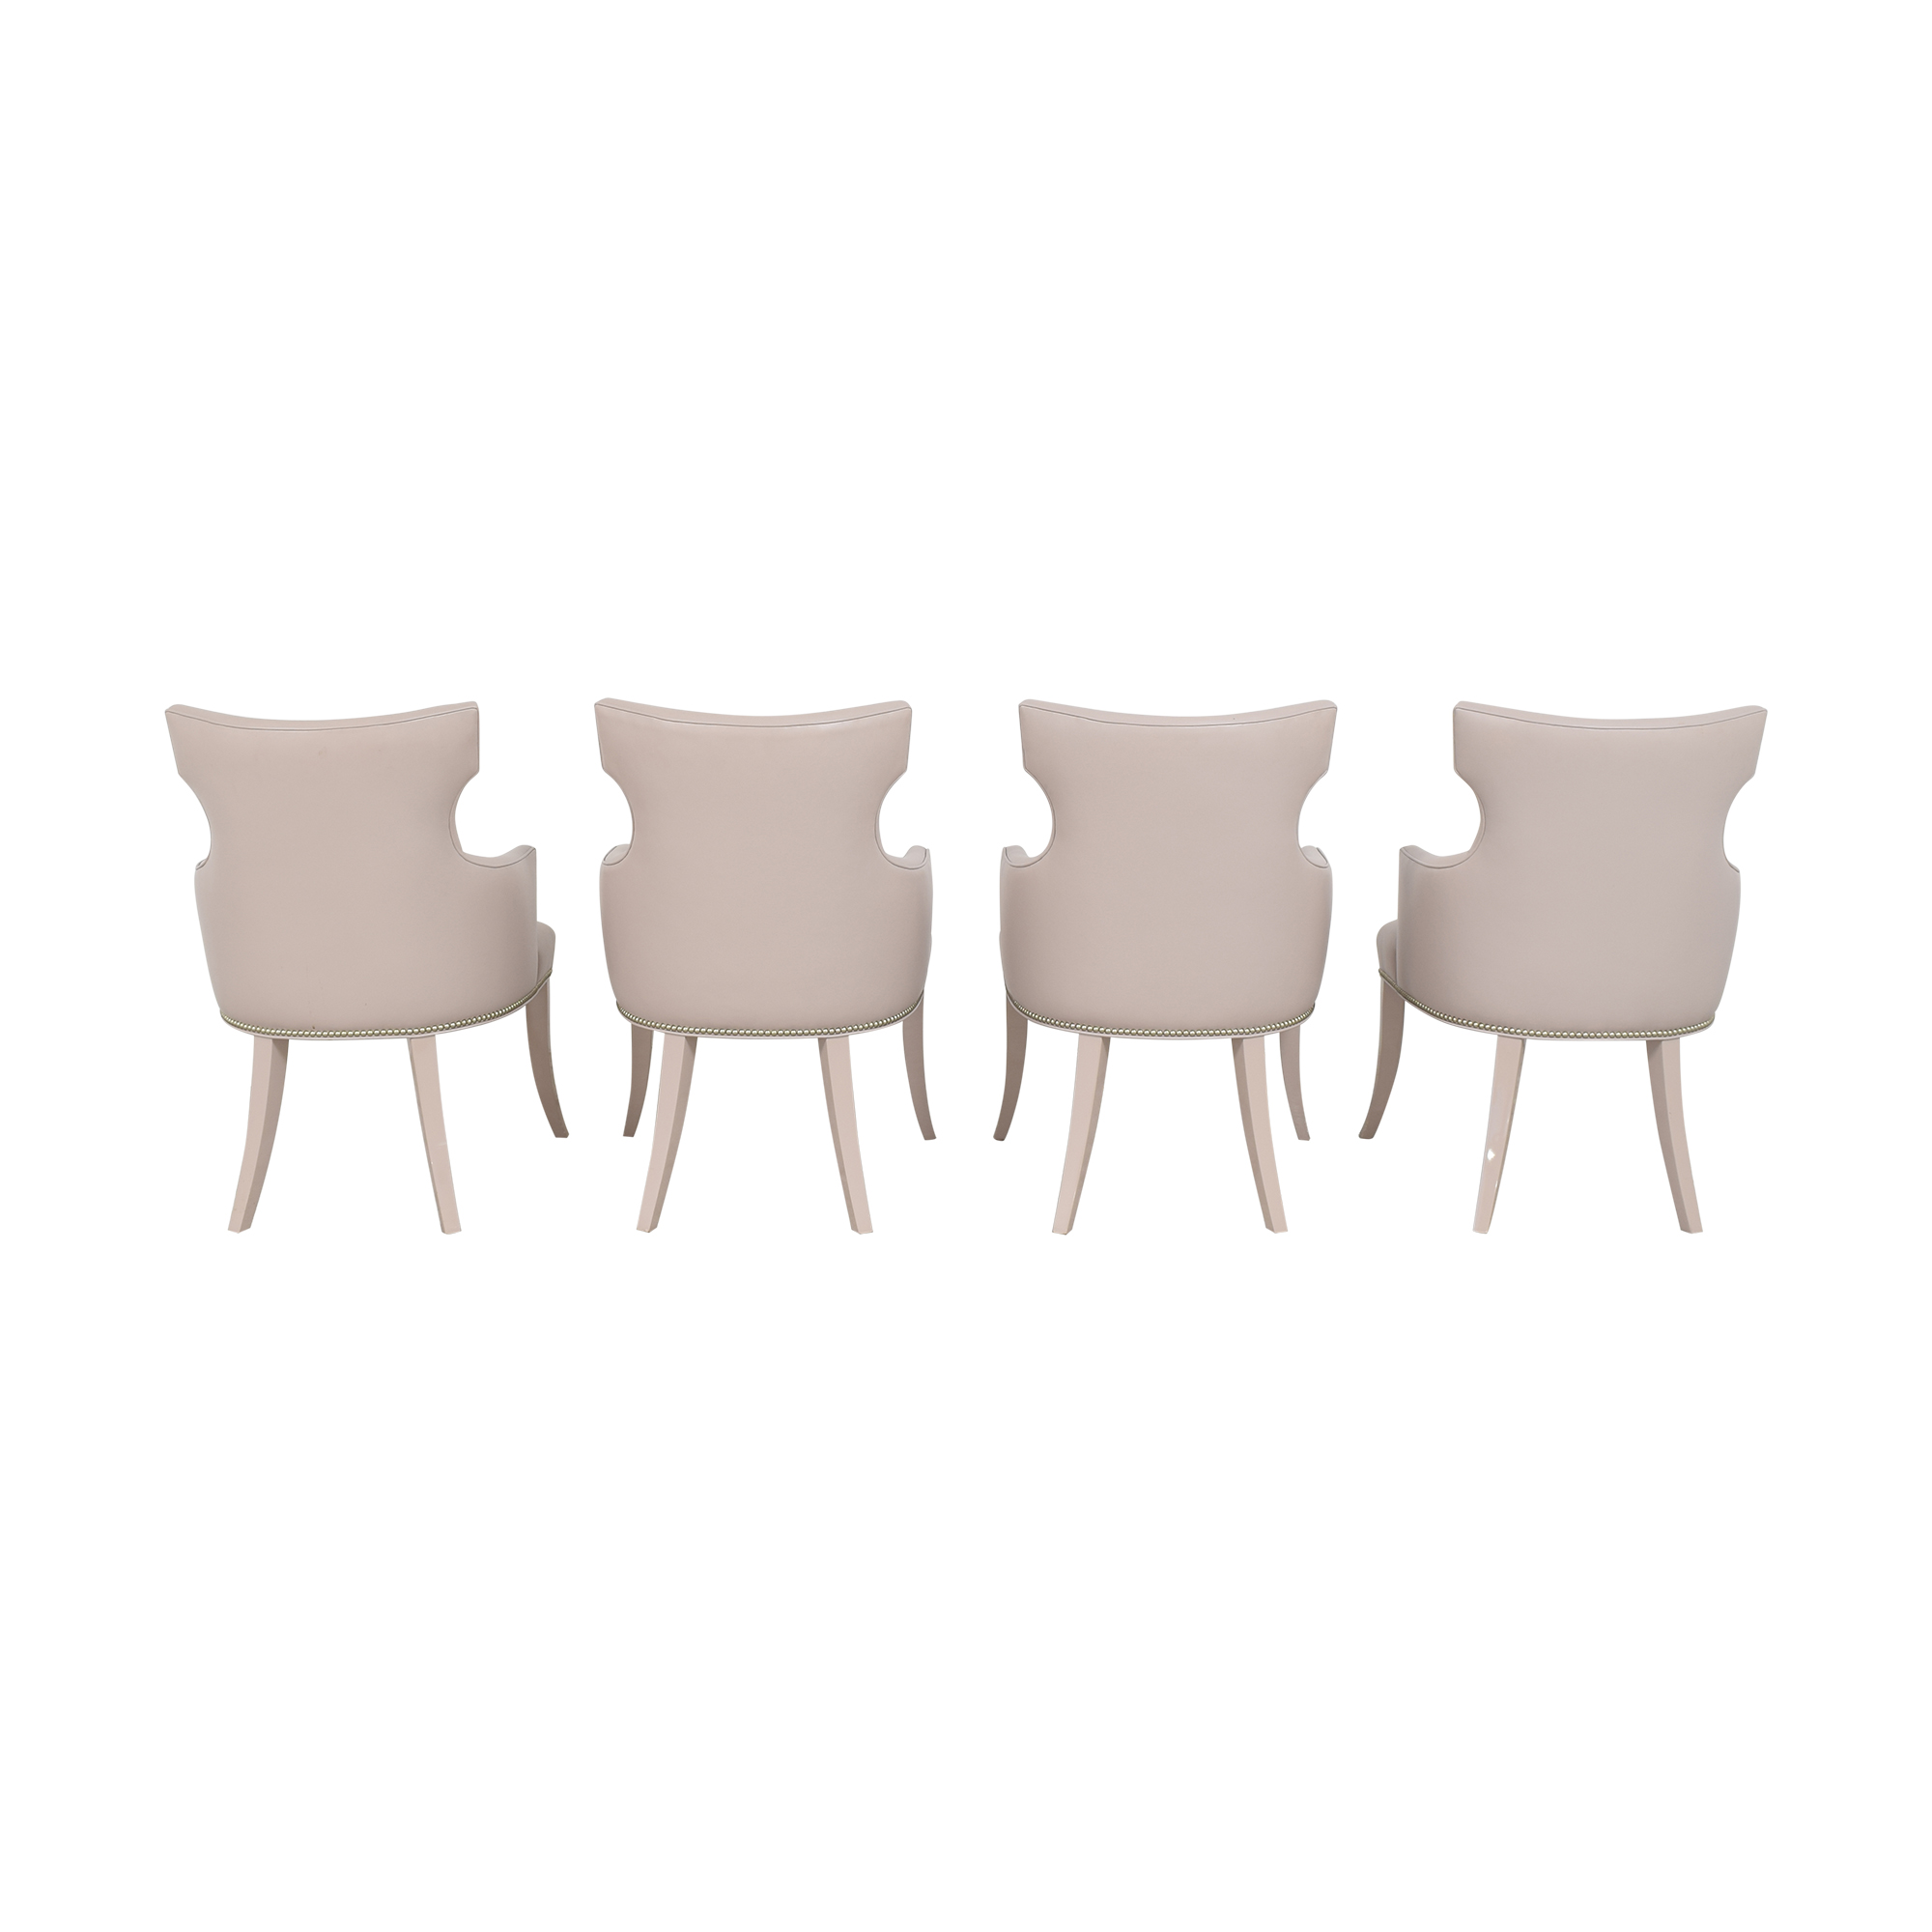 Artistic Frame Artistic Frame Custom Wing Back Dining Chairs used